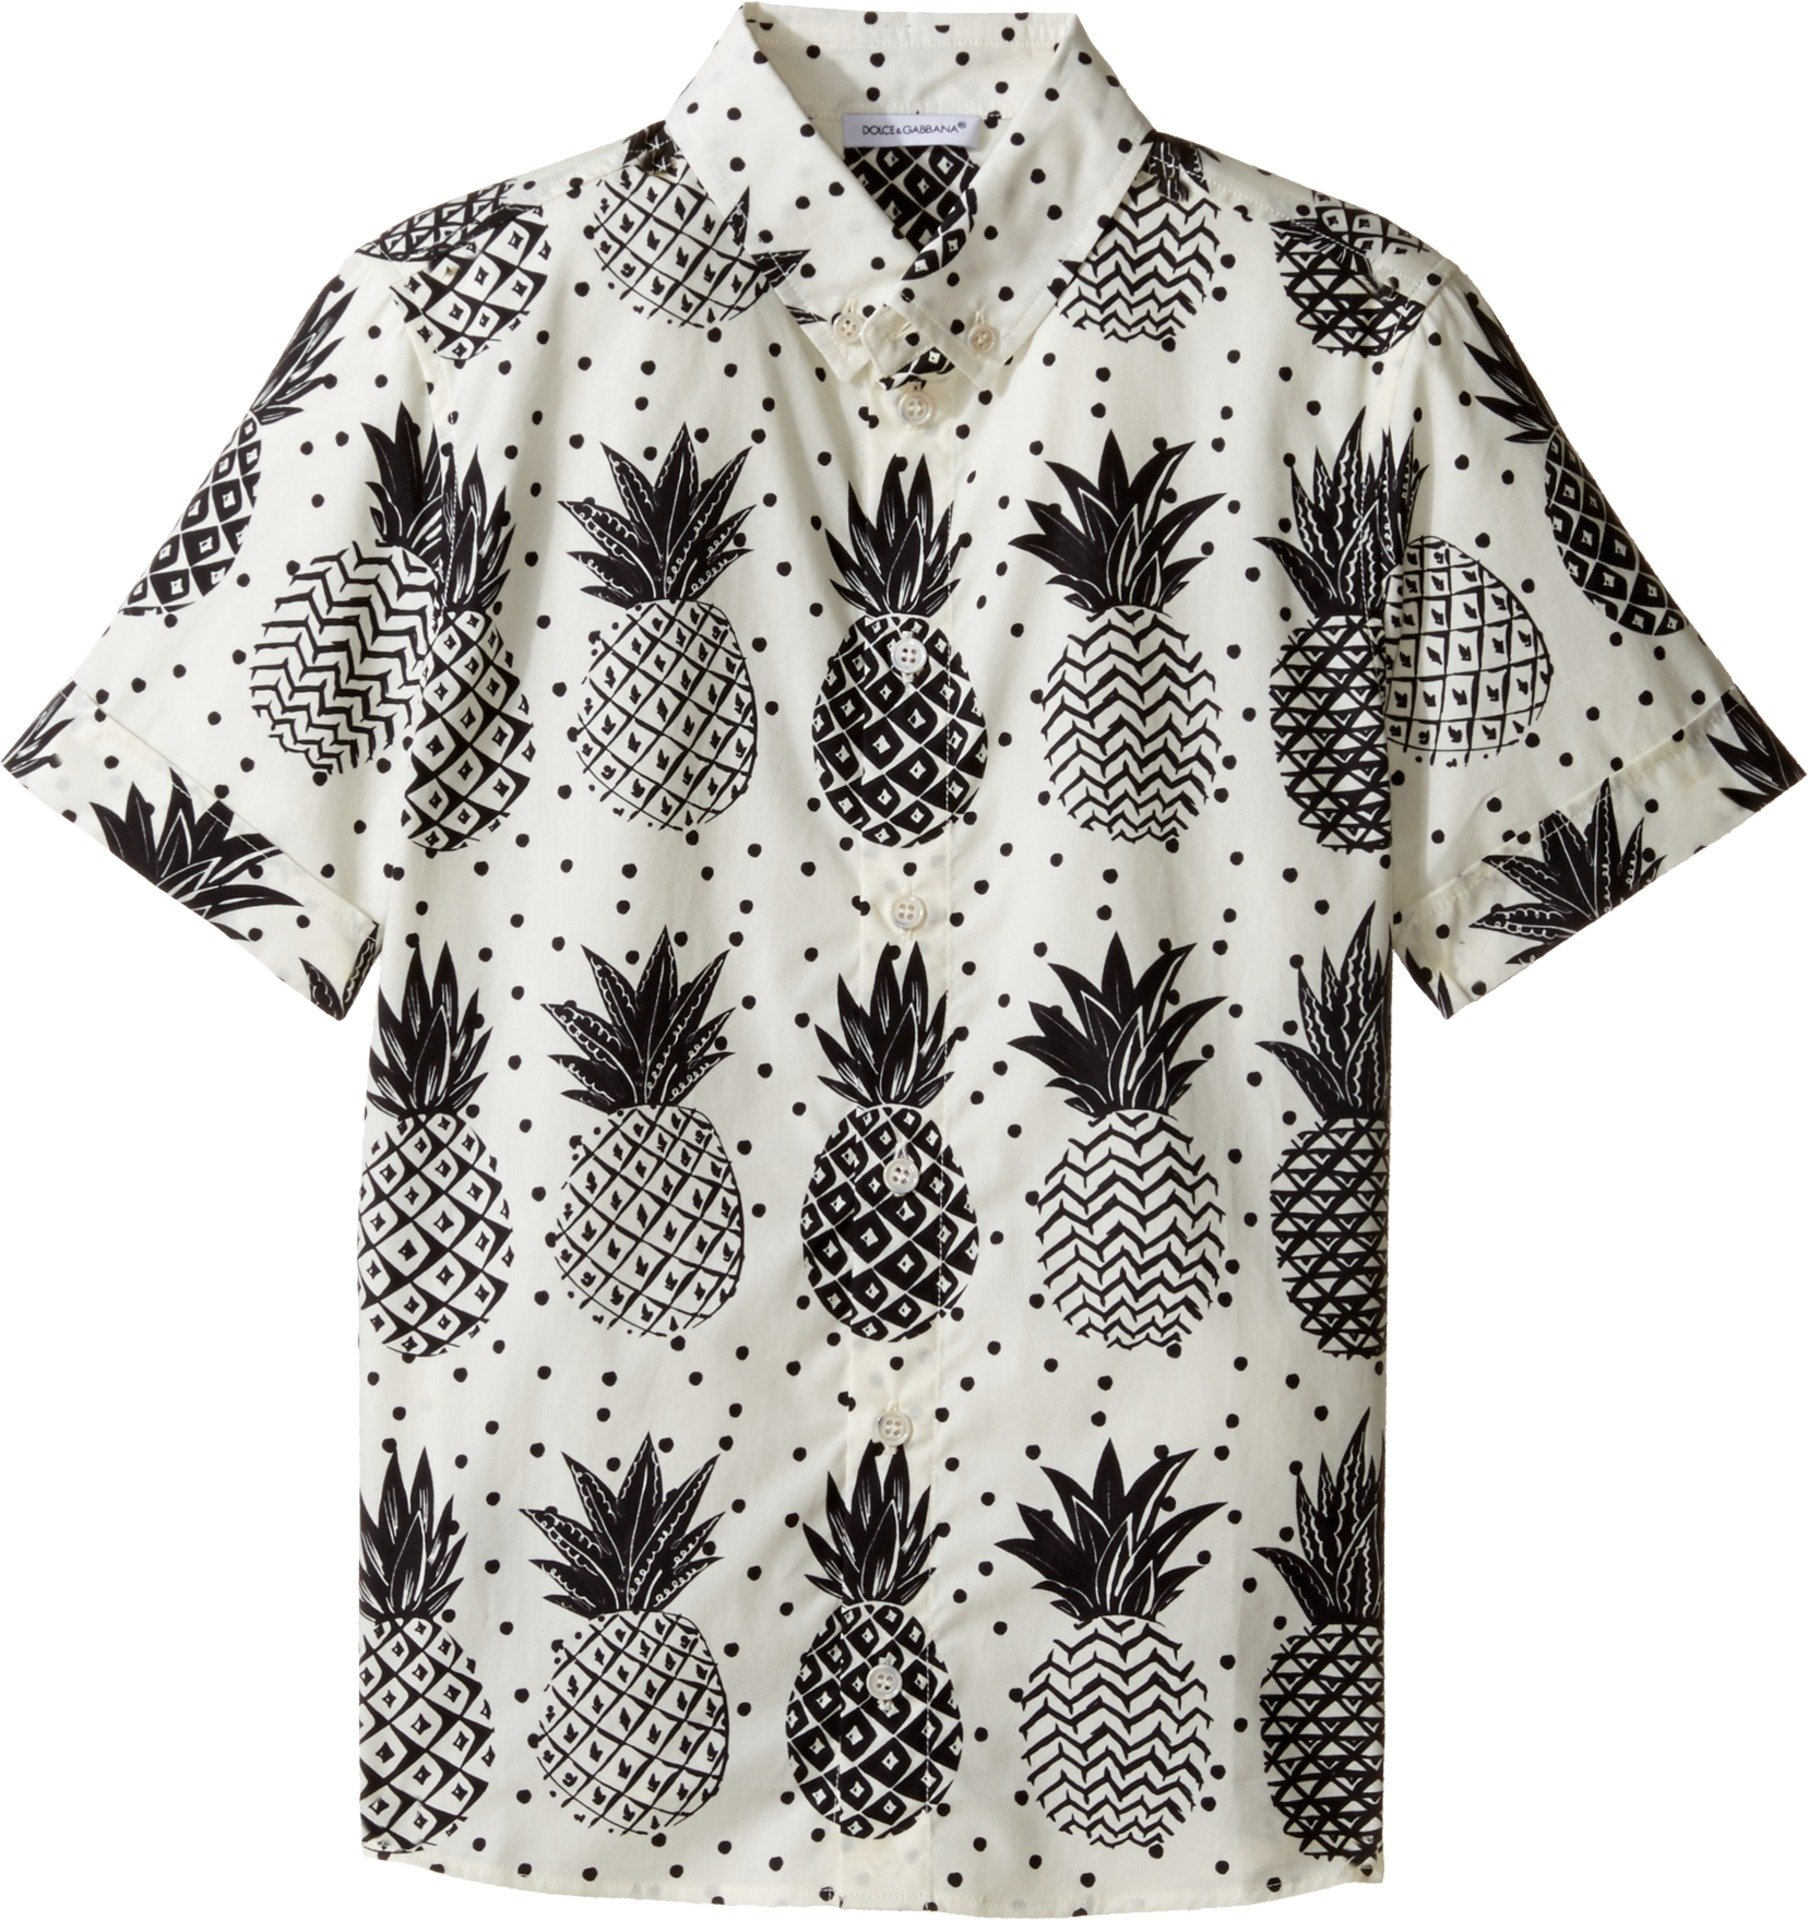 Dolce & Gabbana Kids Boy's Pineapple Button Down (Big Kids) White Print Button-up Shirt by Dolce & Gabbana